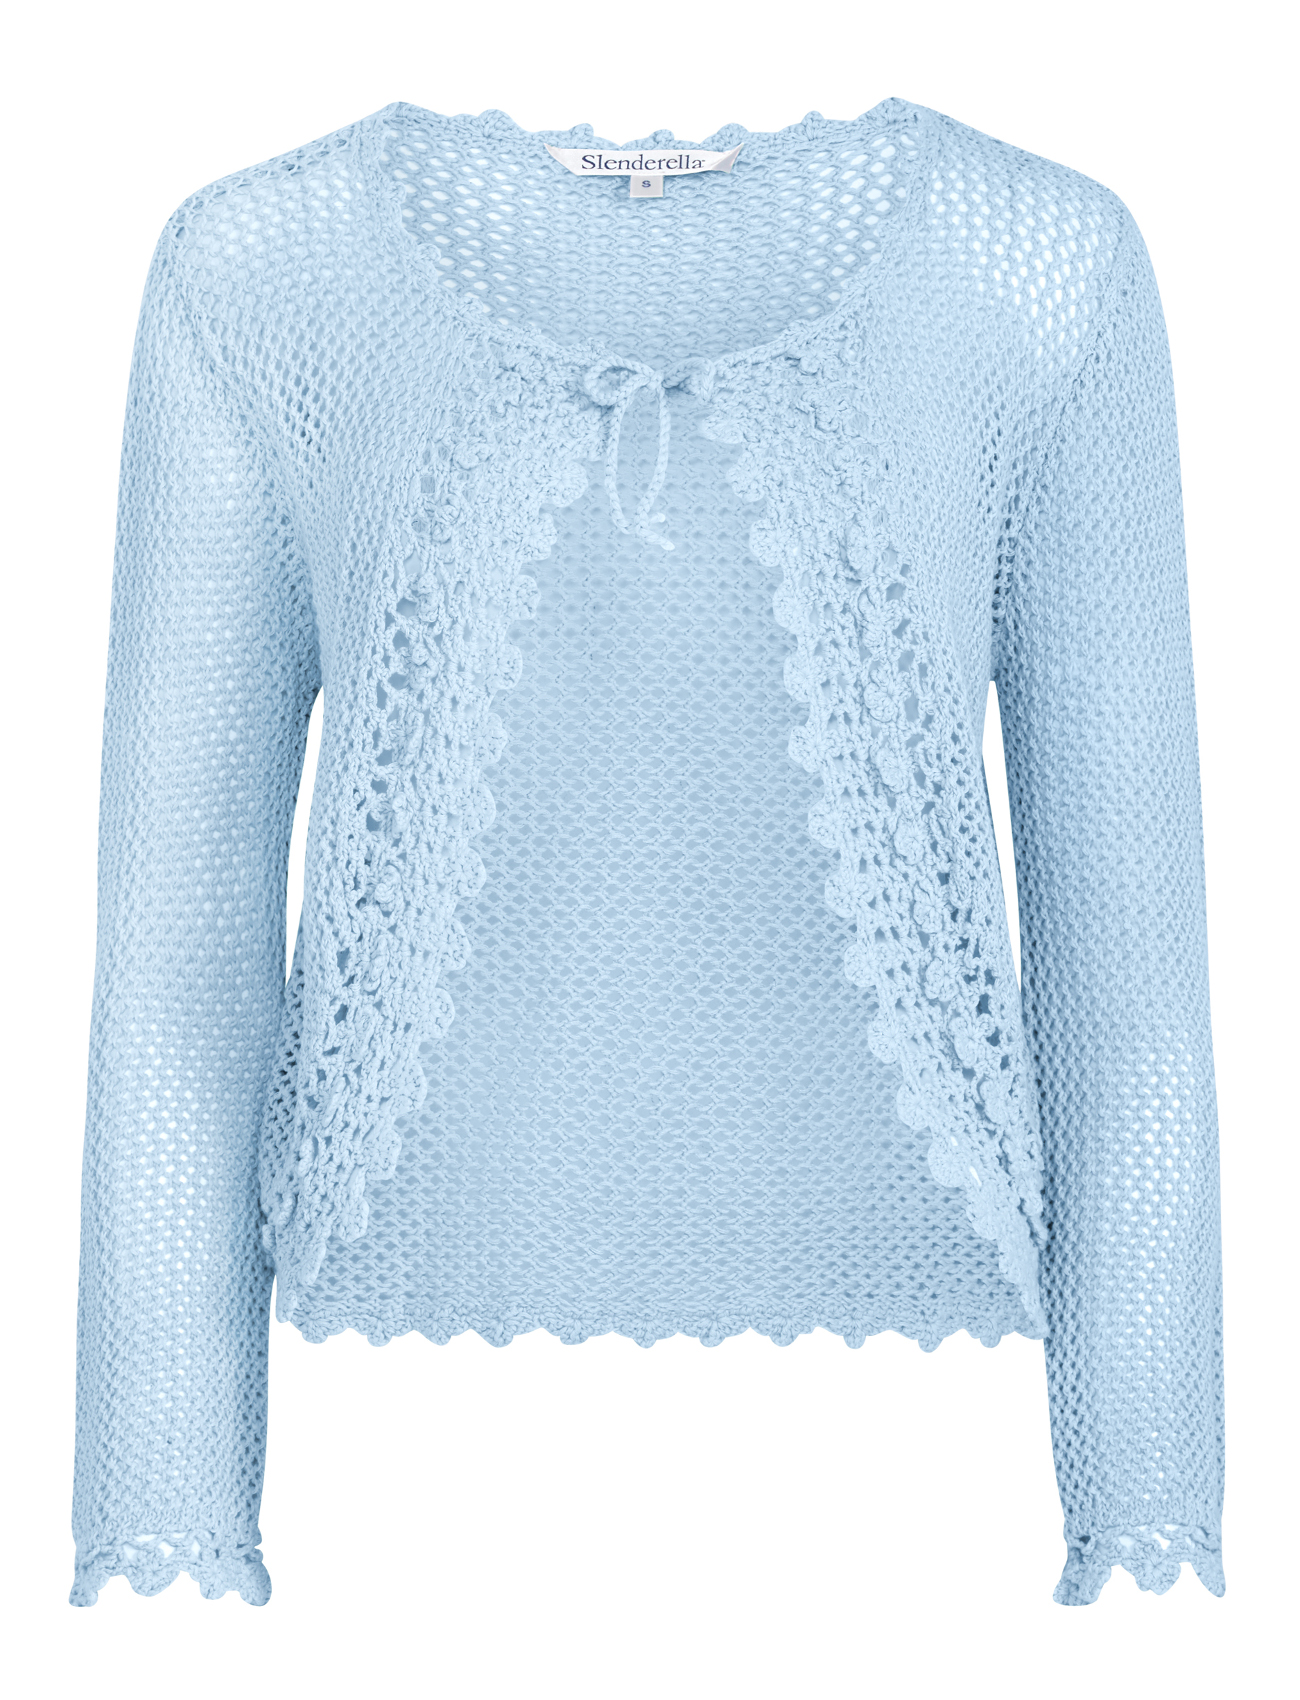 Slenderella Womens Knitted Cotton Bed Jacket Crochet Edge ...